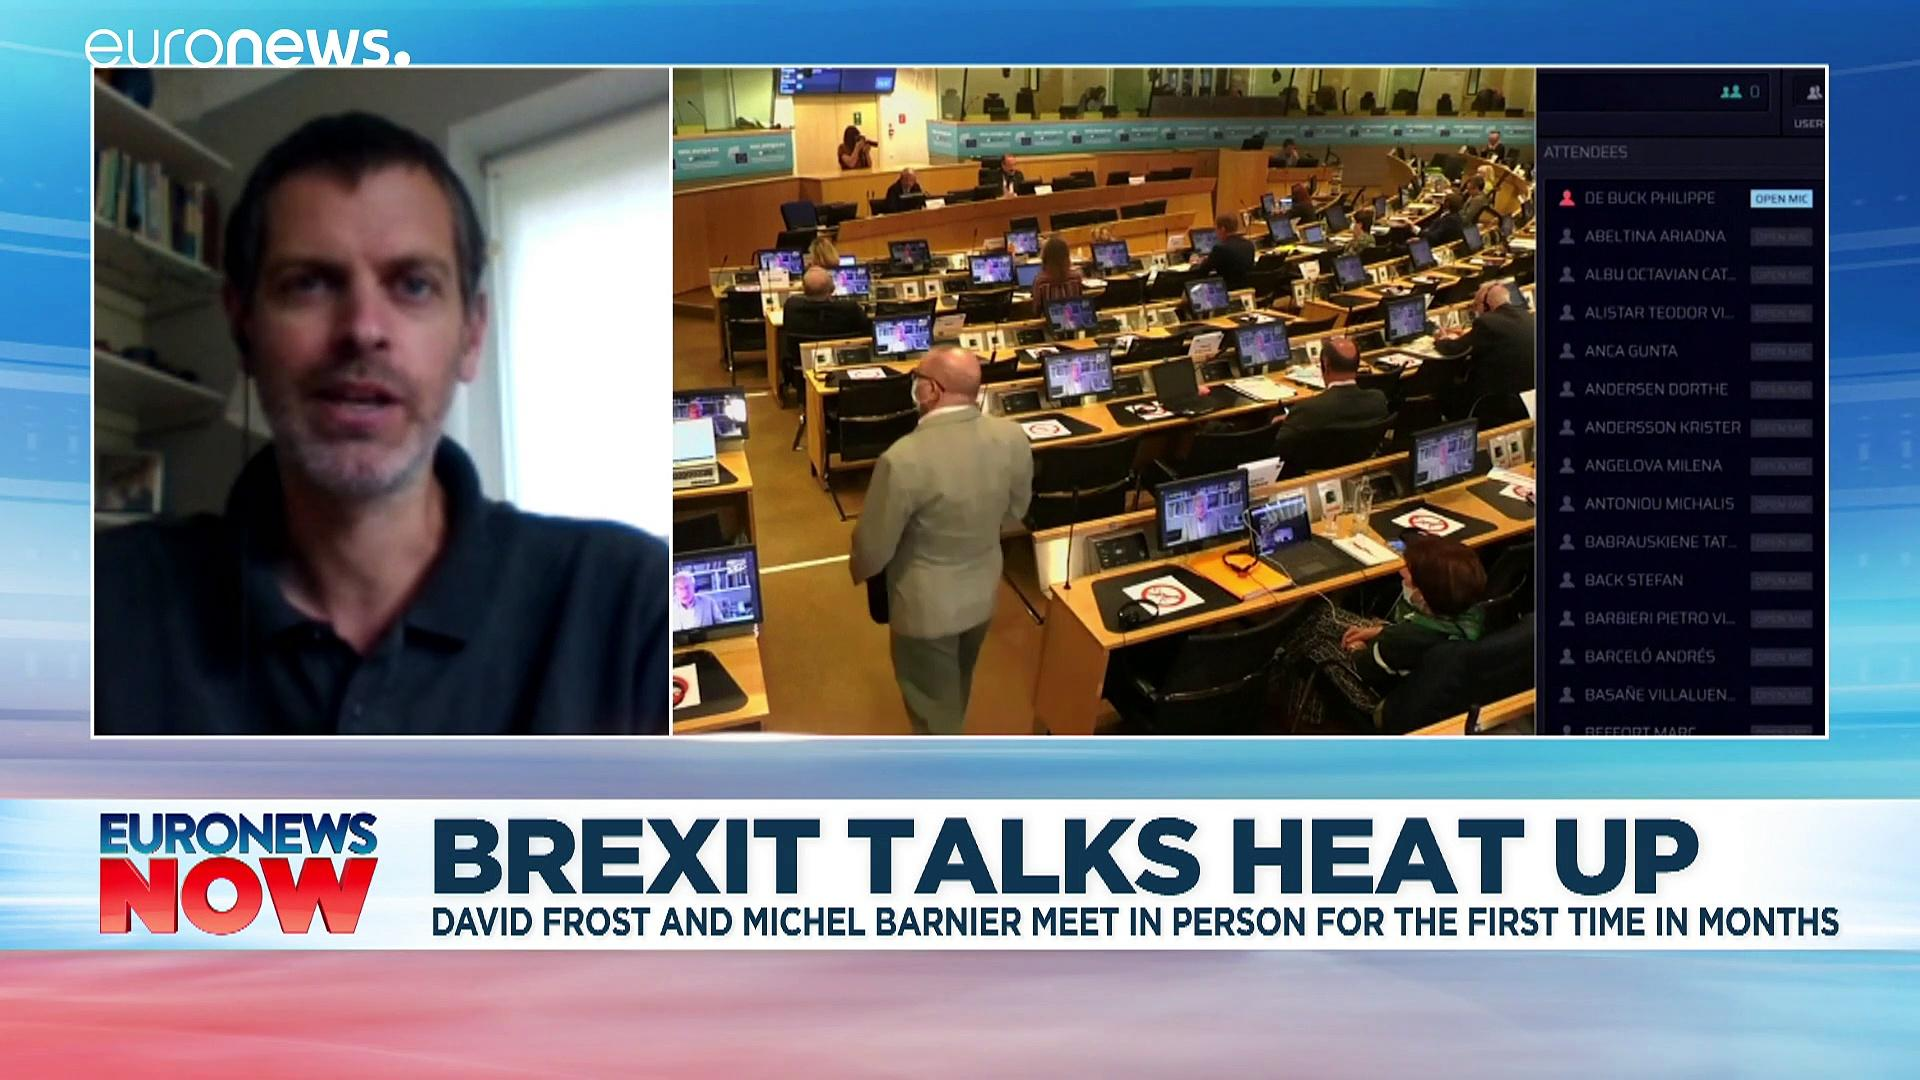 Post-Brexit trade: Row over state aid as face-to-face talks resume in Brussels